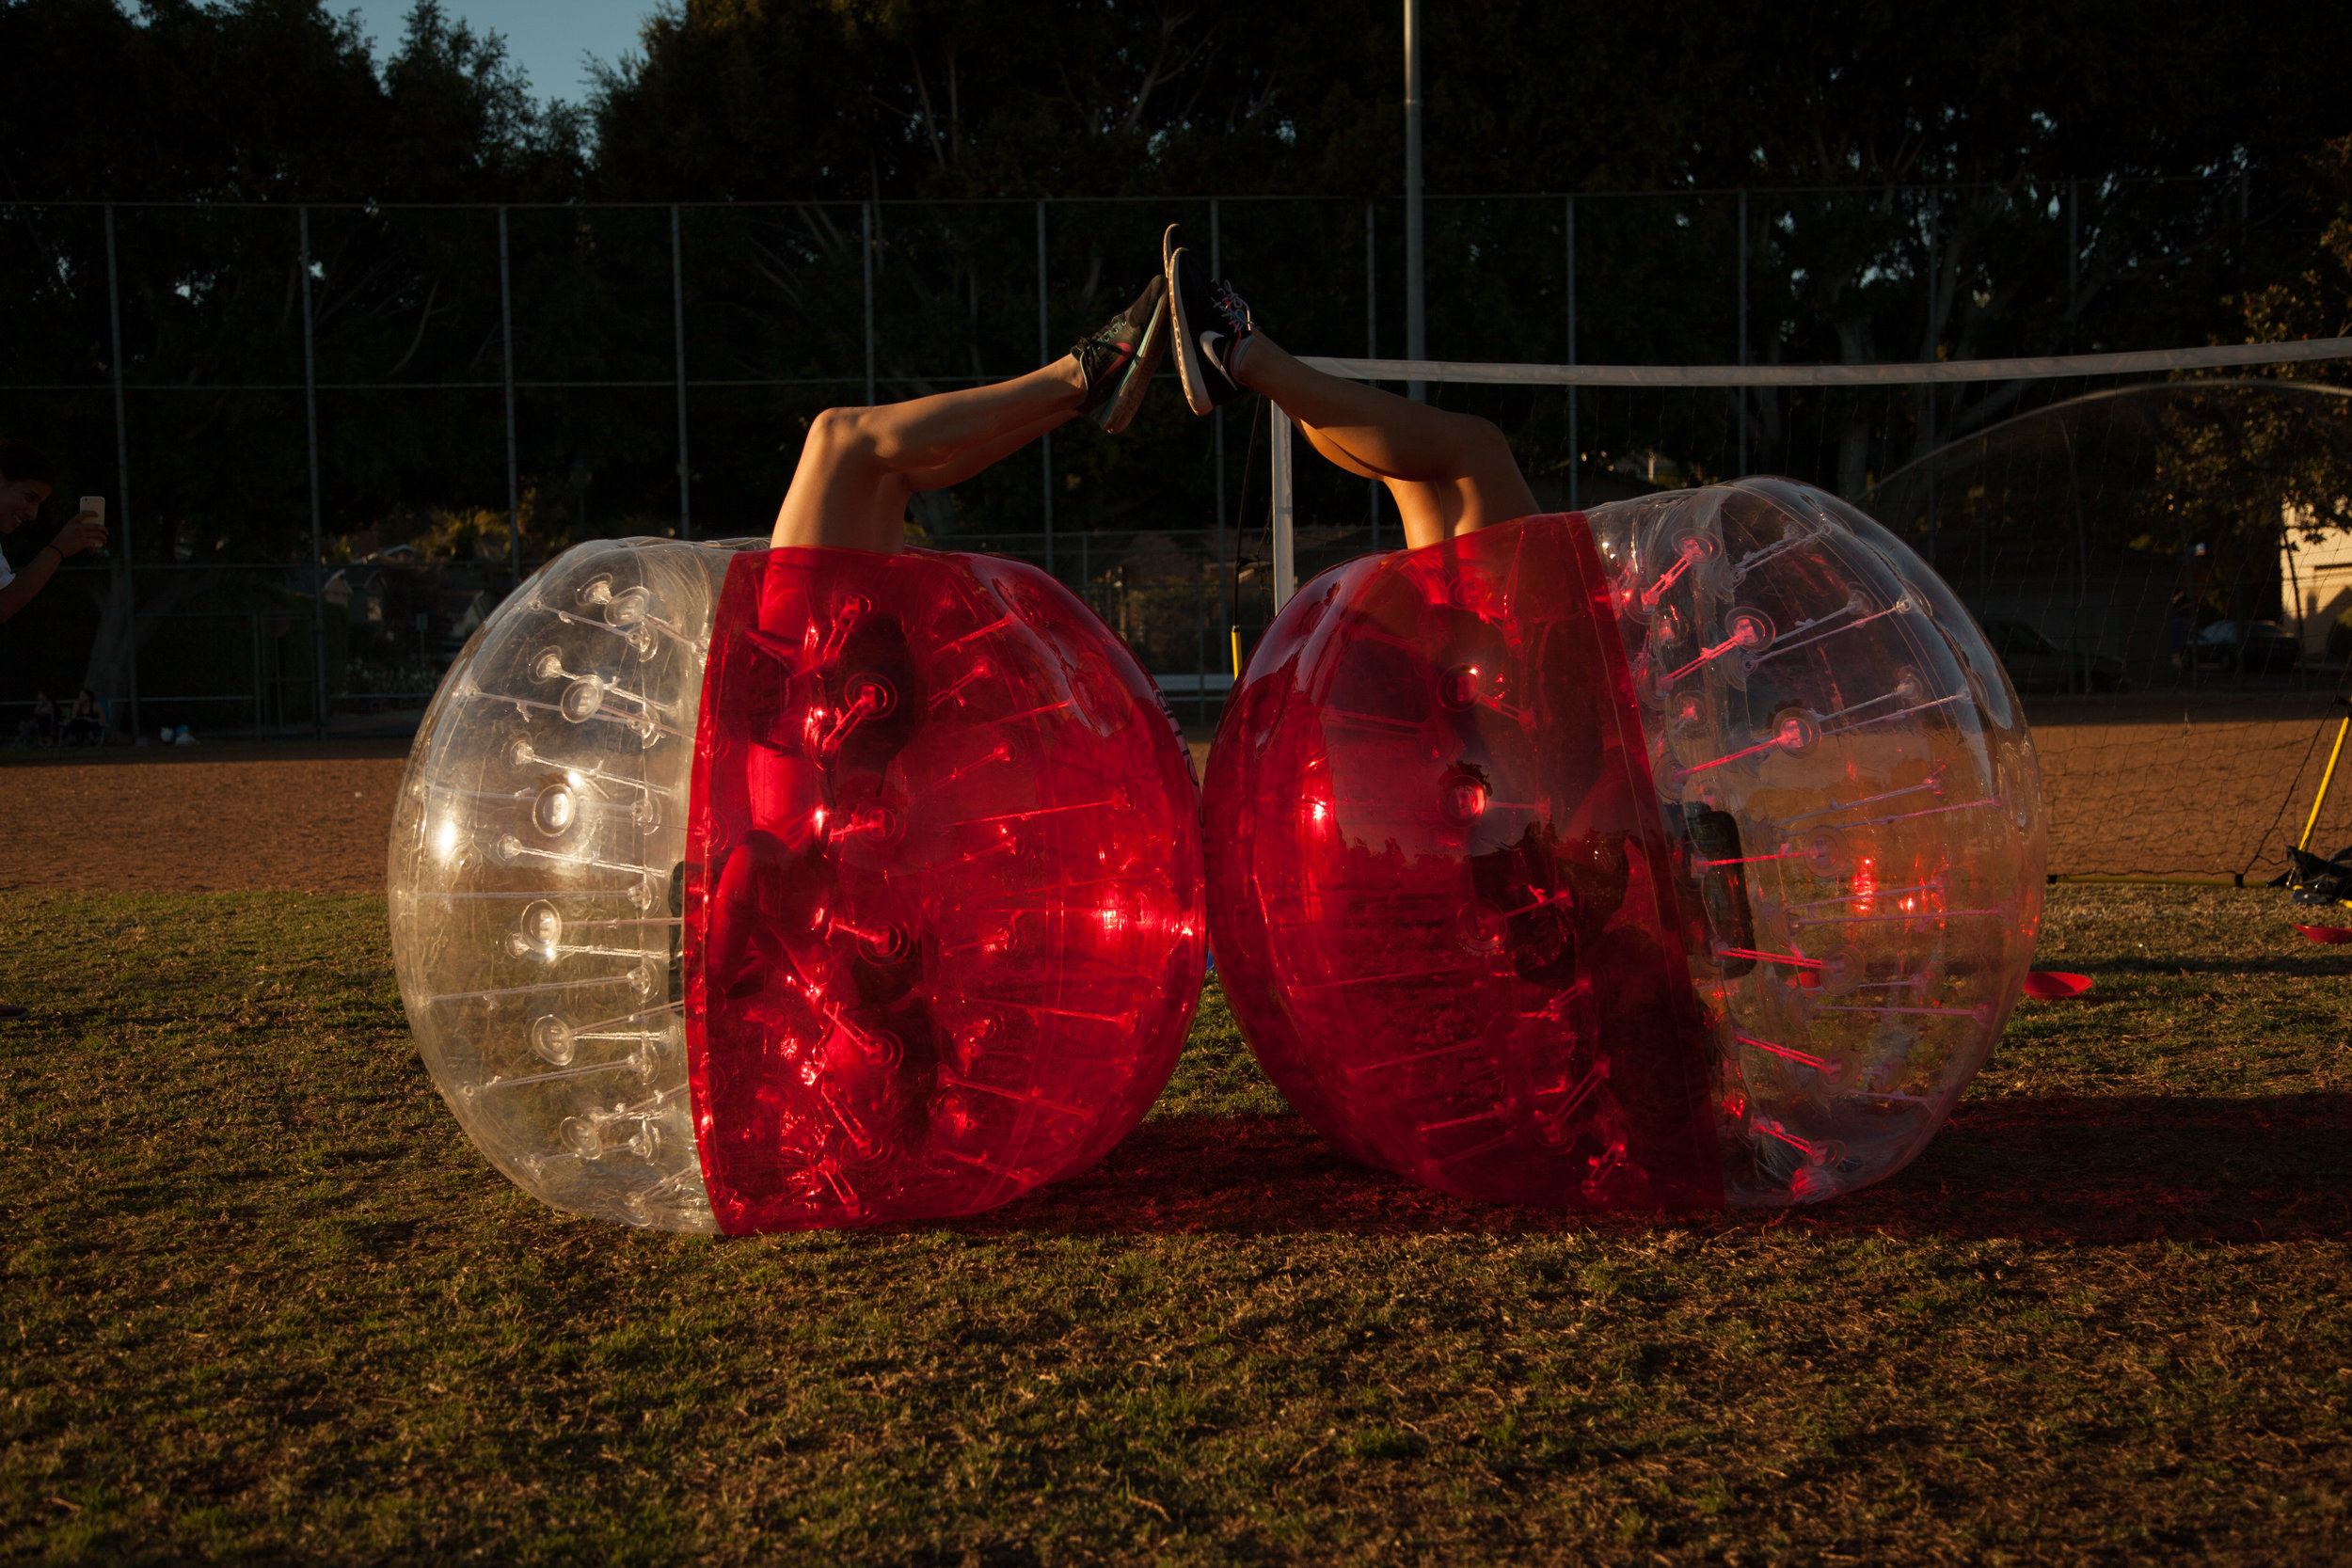 Learn More - Want to know more about Bubble Soccer, like rules, FAQ and history, check out our Learn More section.